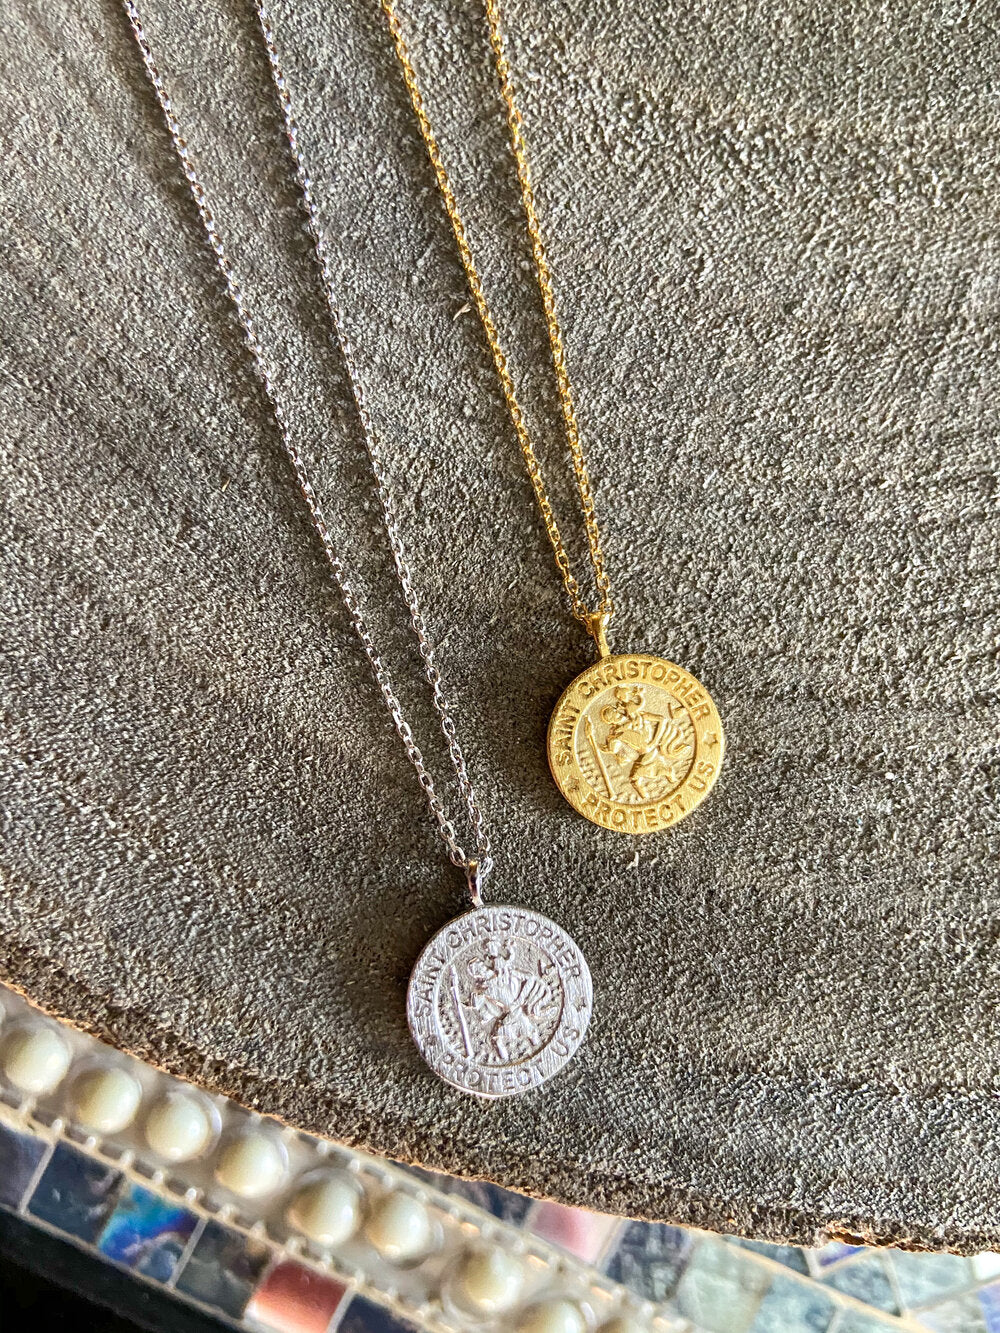 St. Christopher Dainty Necklace